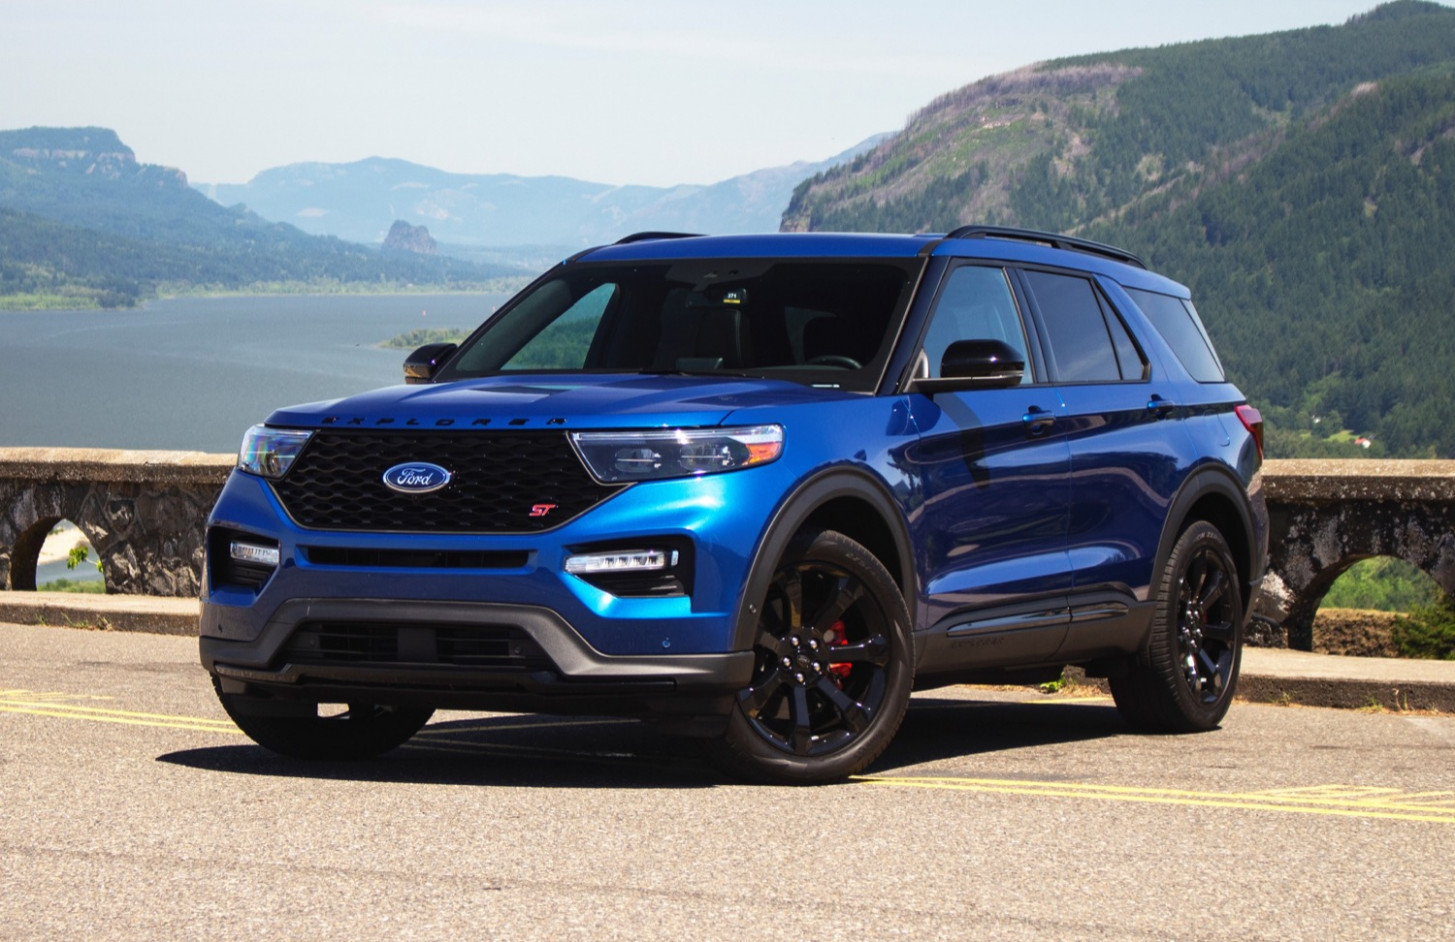 Price, Design and Review When Does The 2022 Ford Explorer Come Out